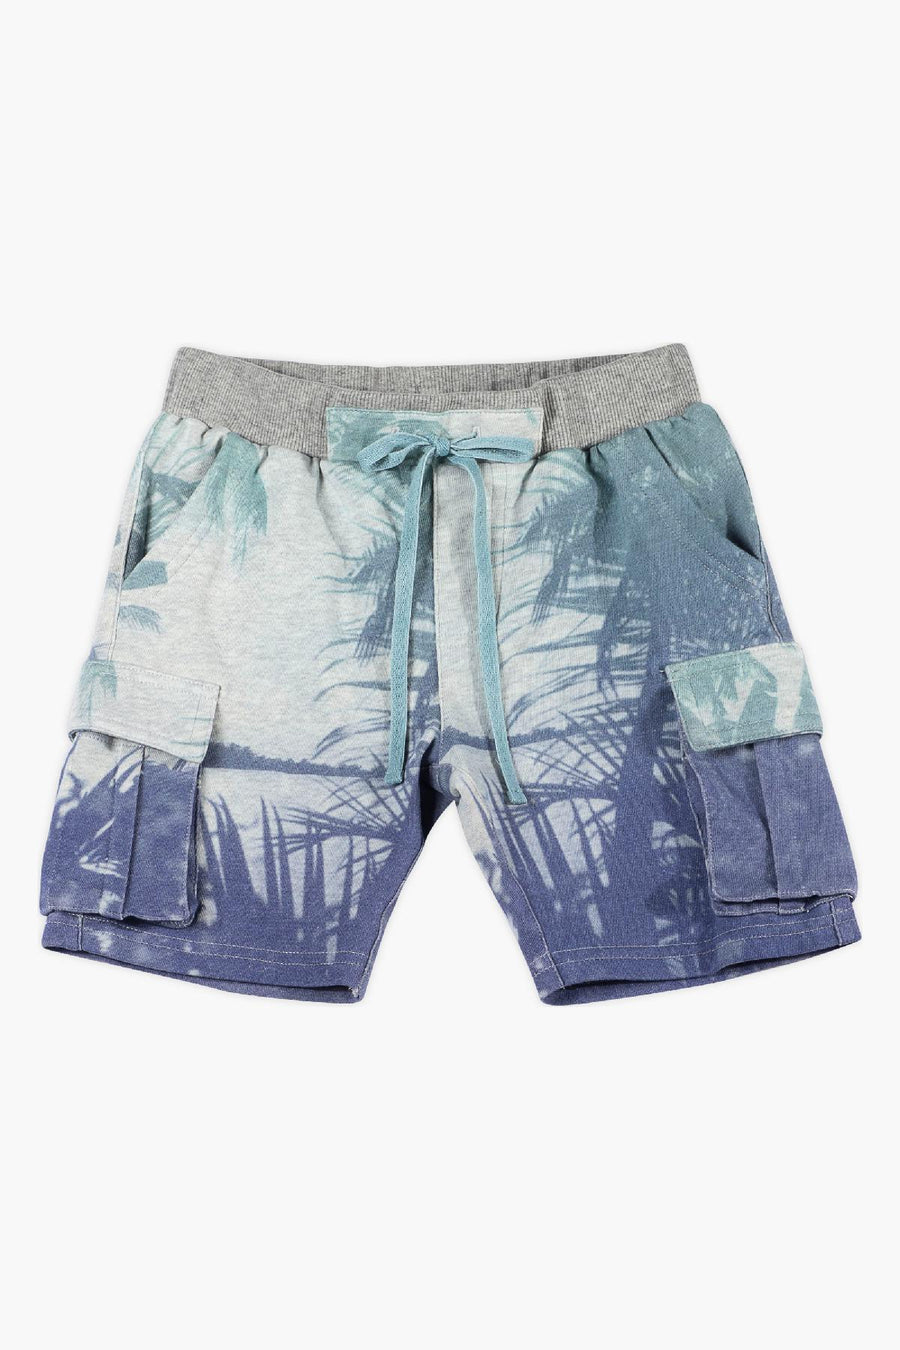 Paper Wings Palms Boys Cargo Shorts